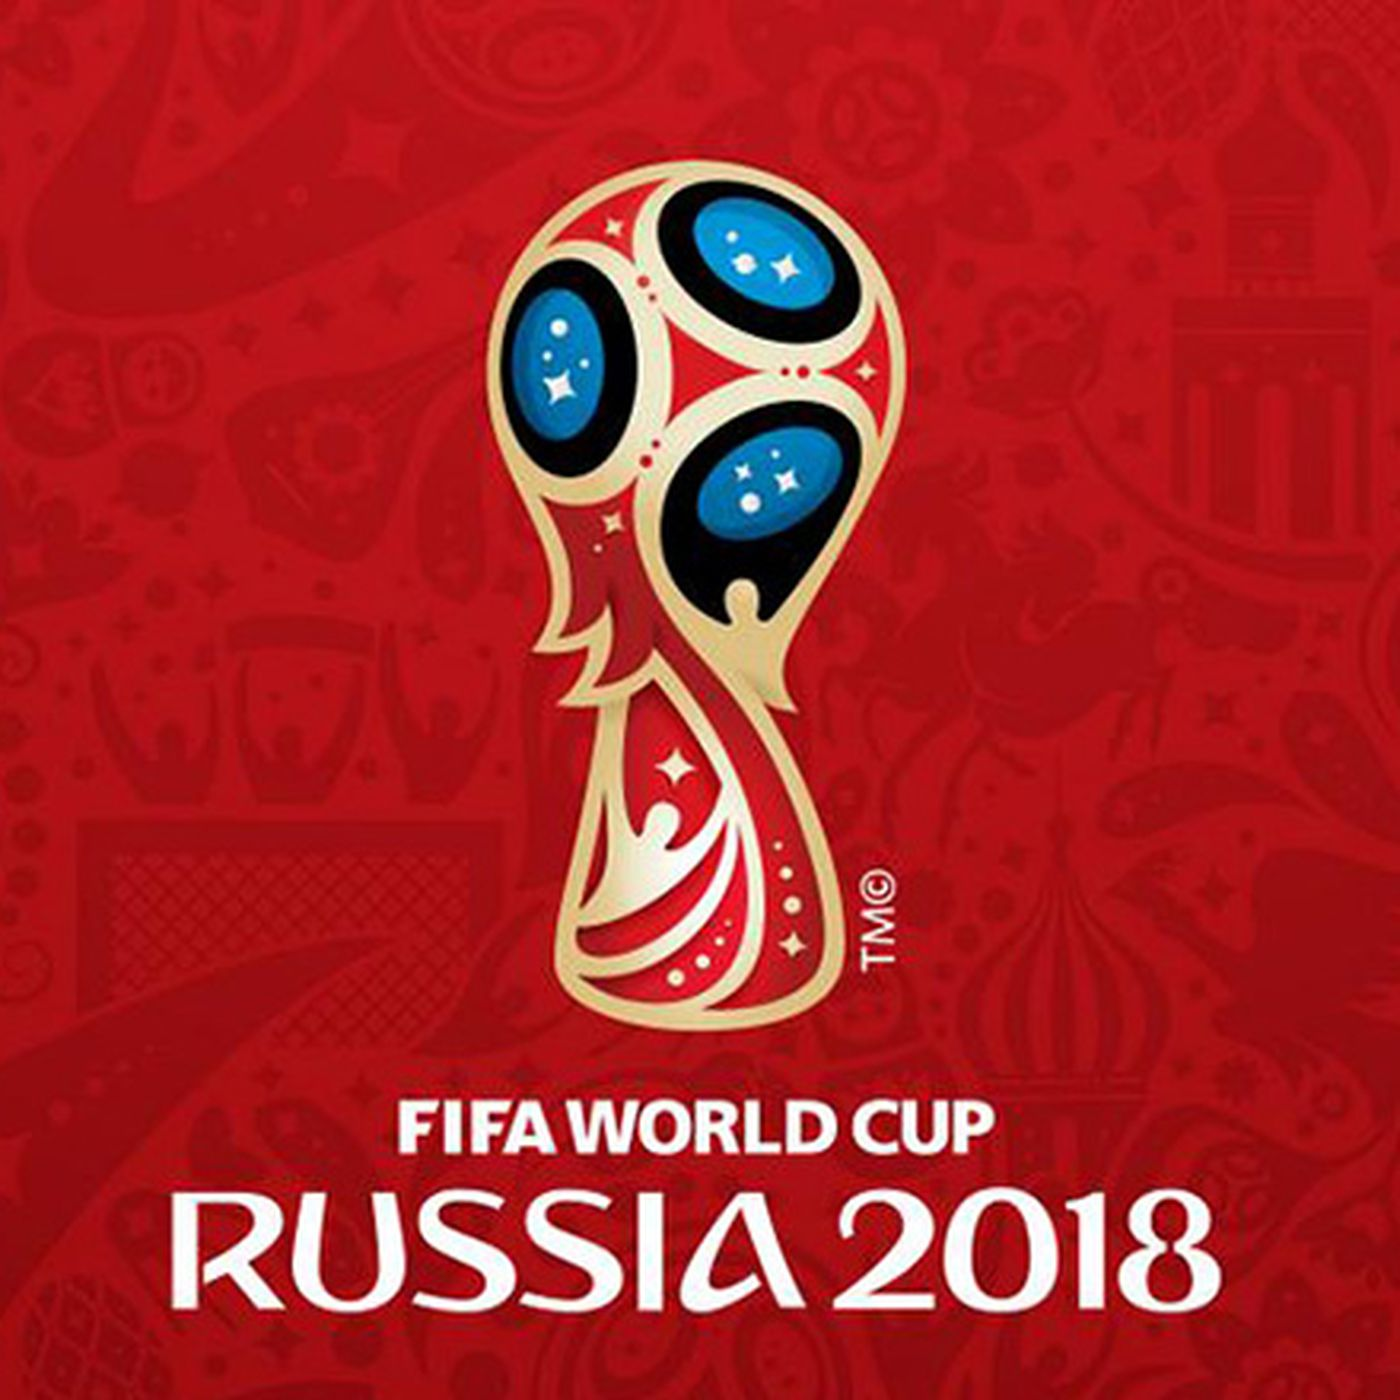 how to watch fifa world cup 2018 online for free